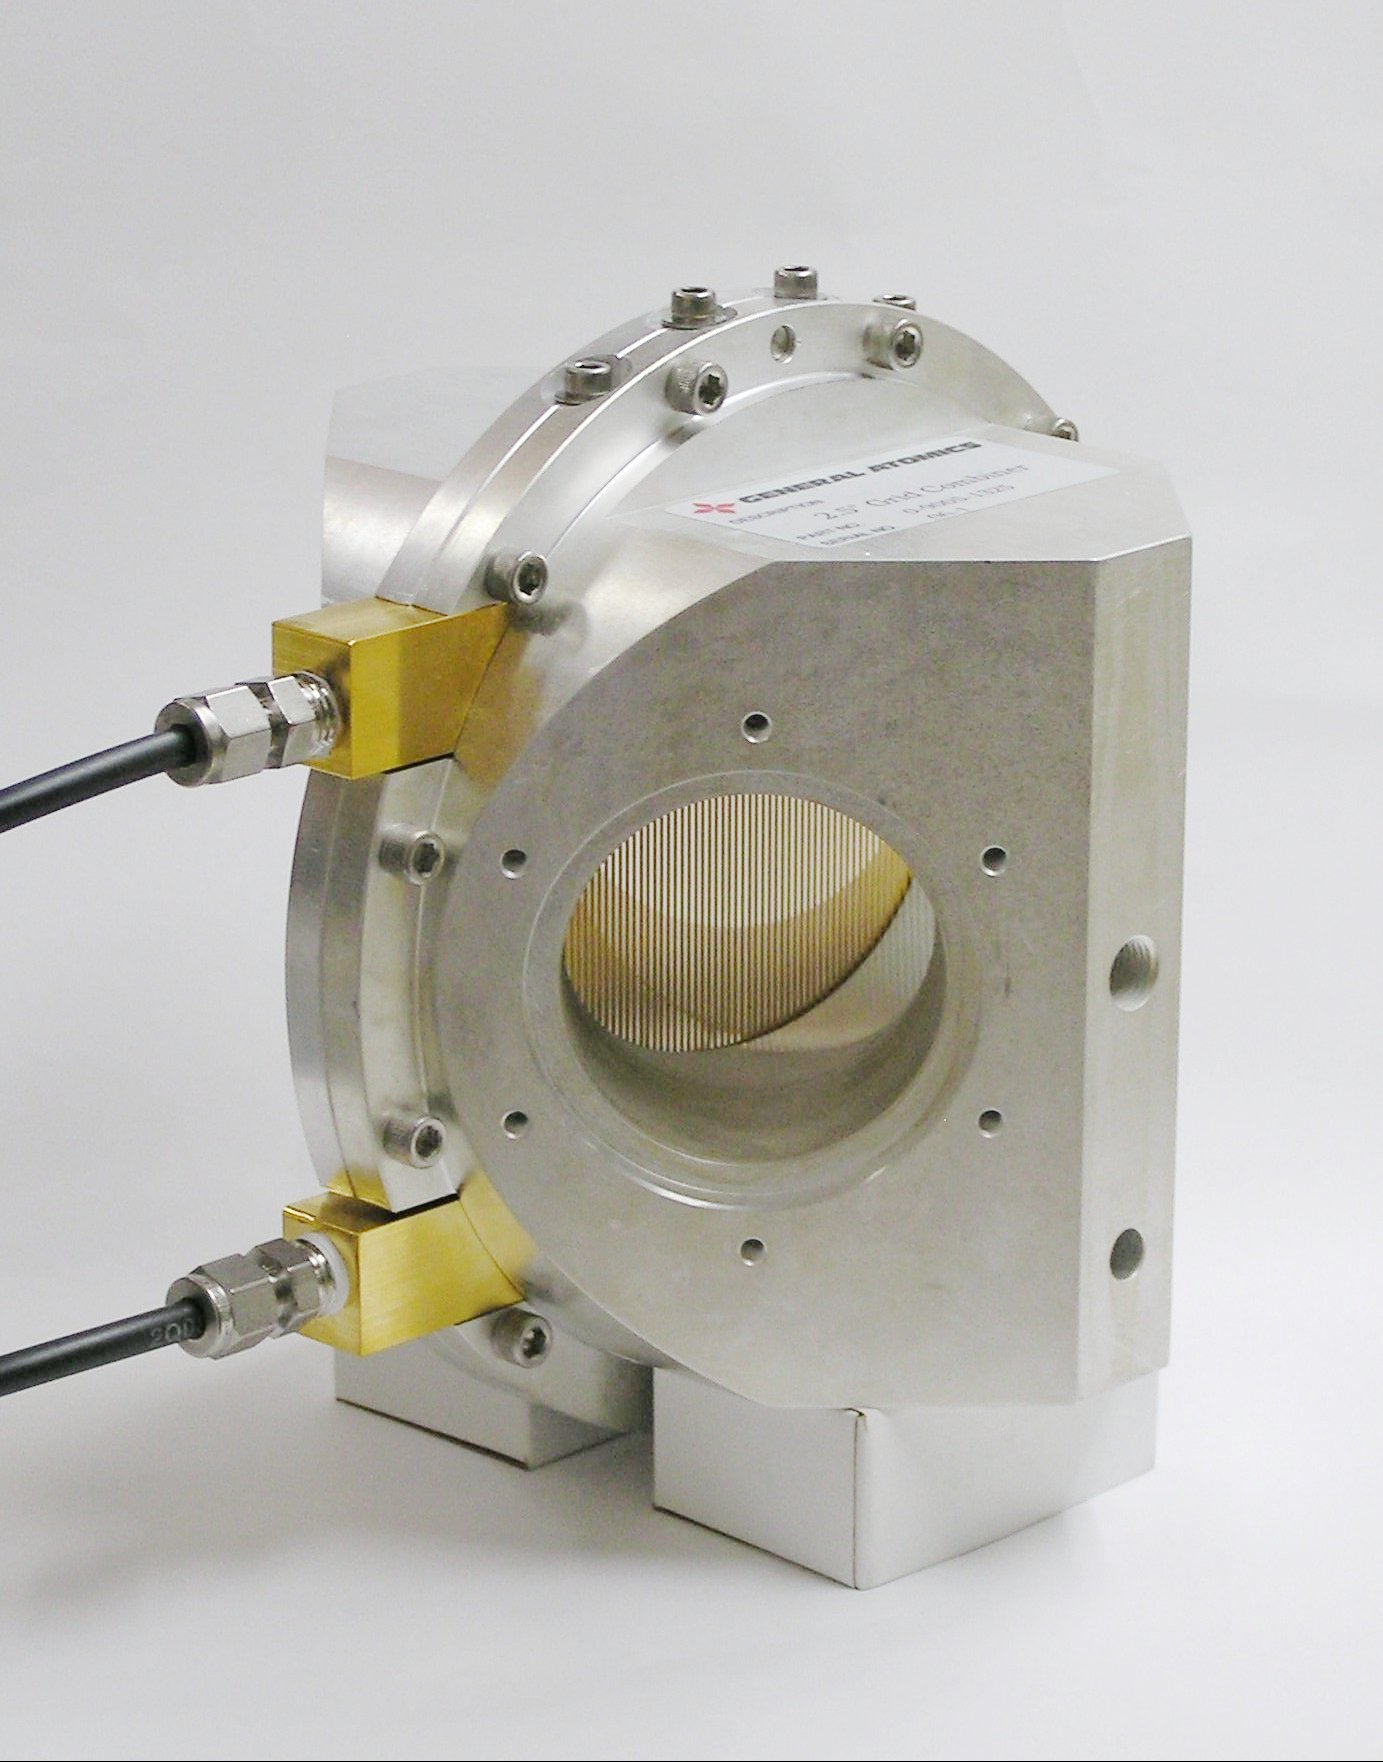 Wire grid polarizer combiner/splitter in 63.5 mm waveguide for high power at 96 GHz.